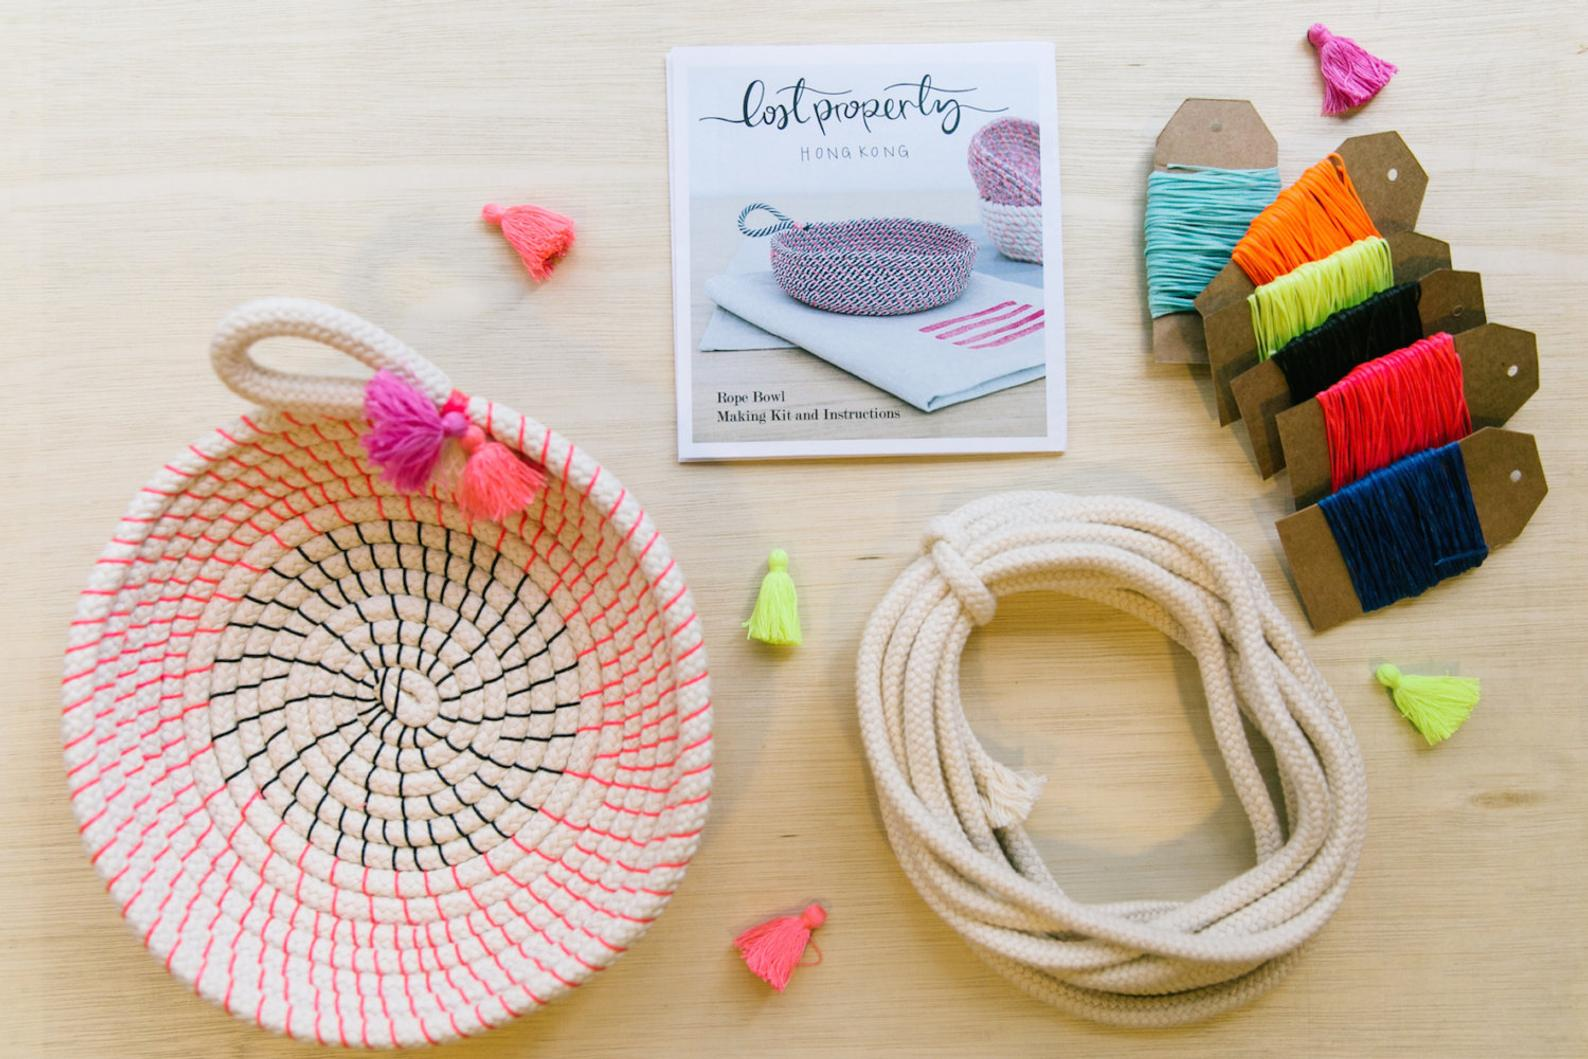 Craft kit for making a coiled rope bowl